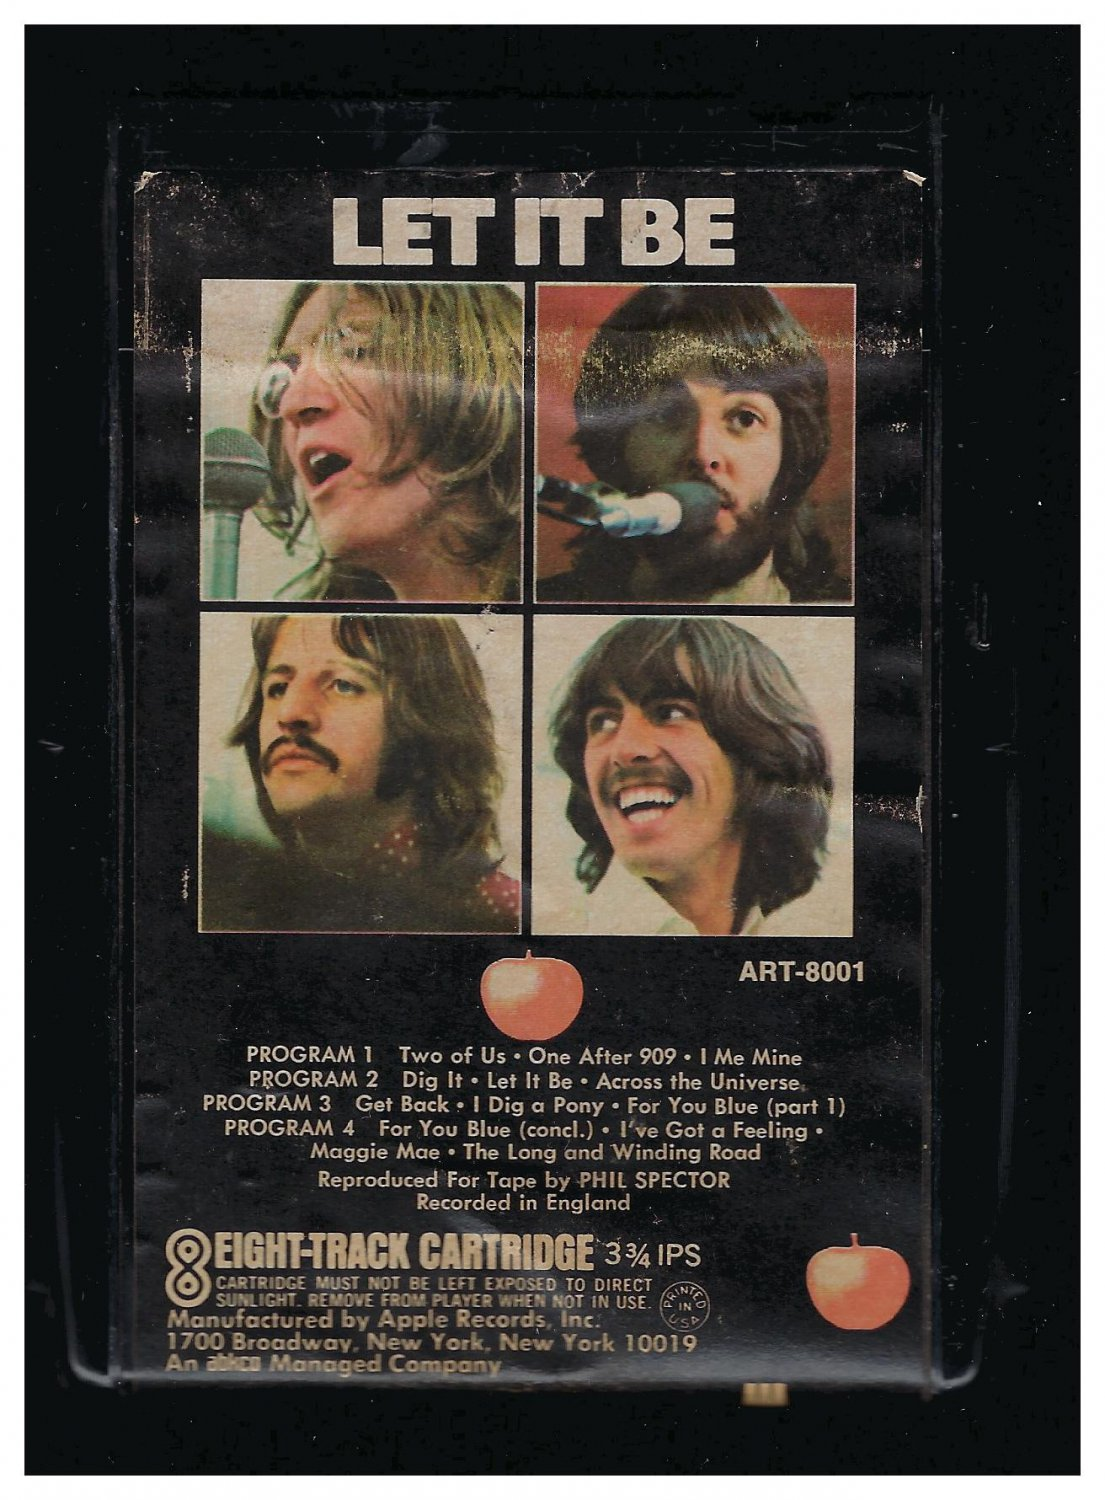 The Beatles - Let It Be 1970 APPLE A23 8-TRACK TAPE